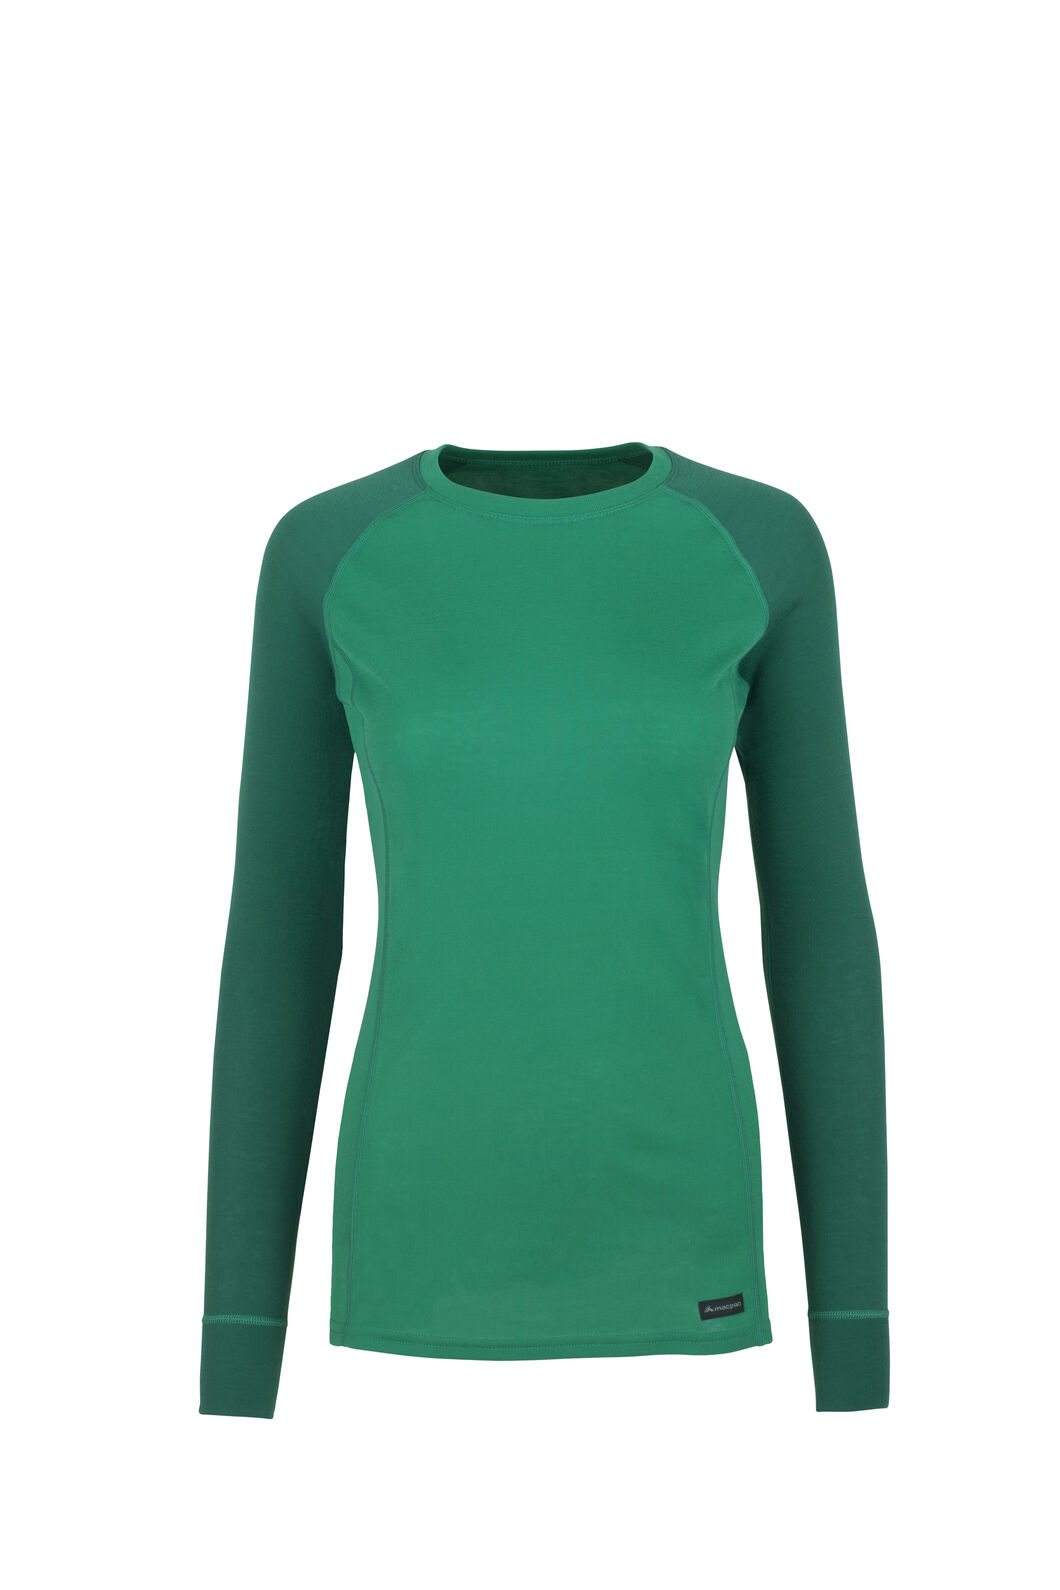 Macpac Geothermal Long Sleeve Top — Women's, Storm/Parasailing, hi-res